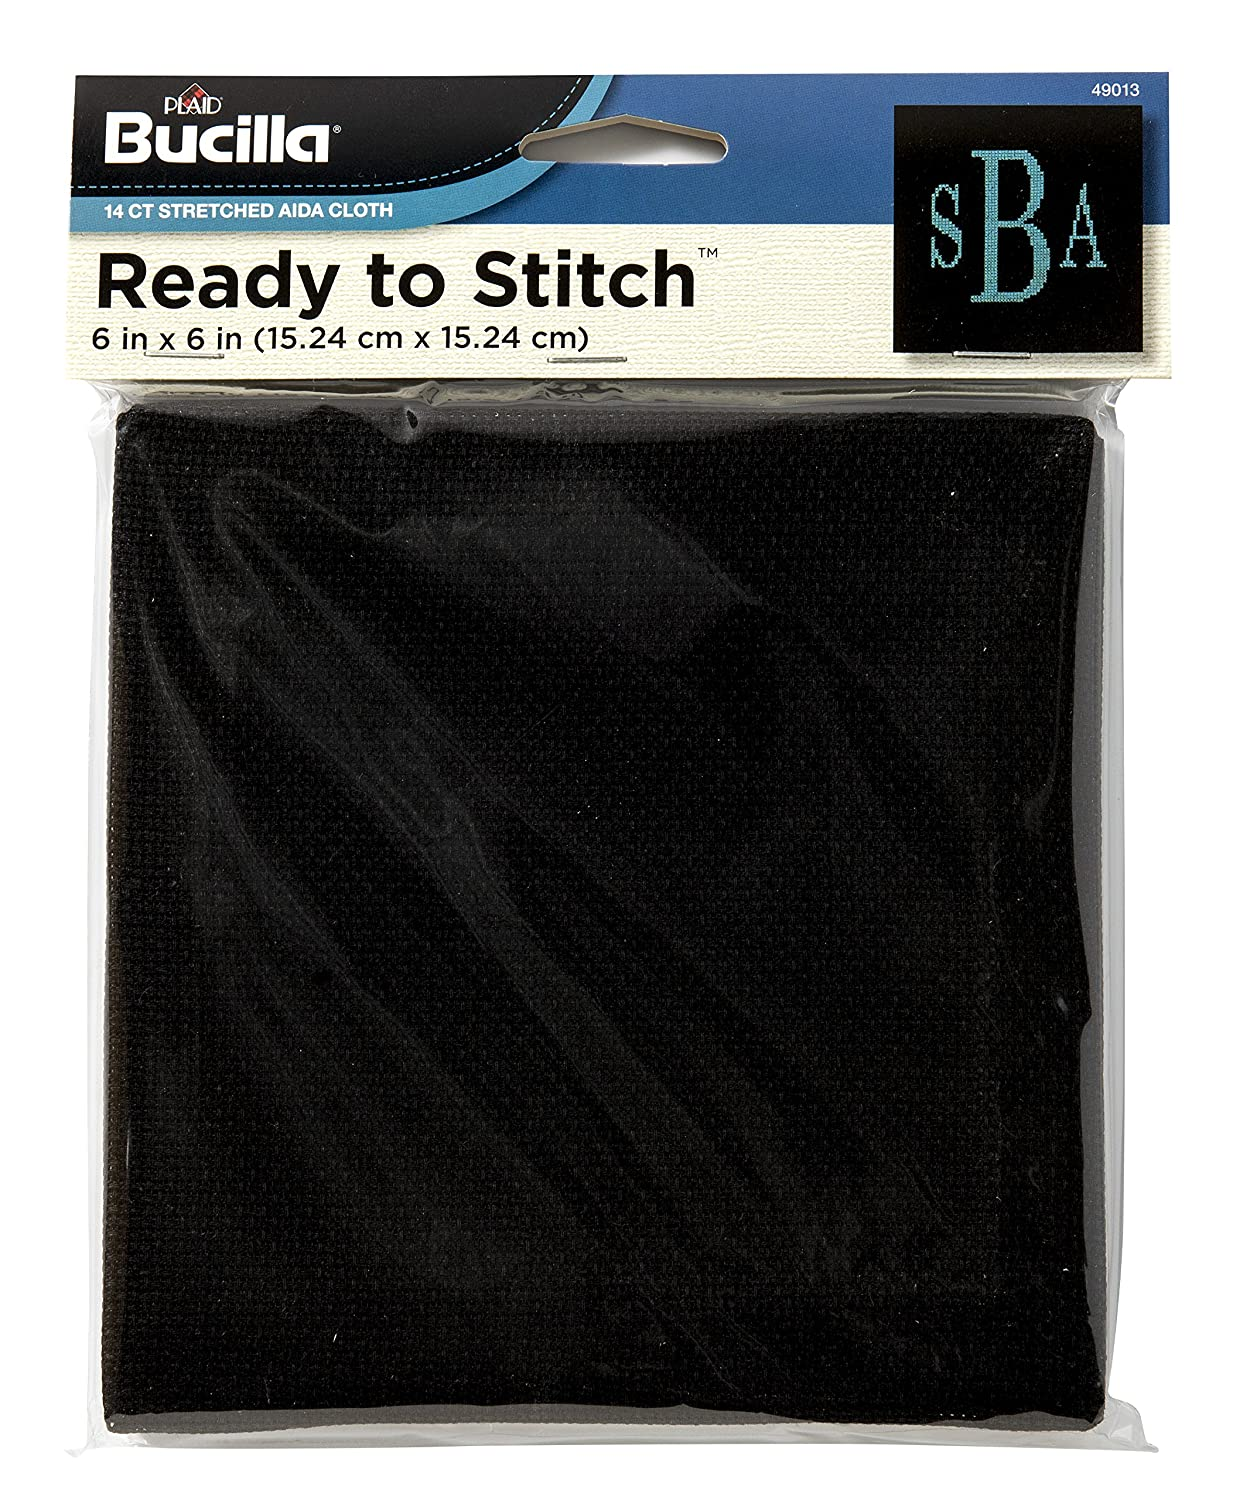 Bucilla Ready to Stitch Aida Cloth, 6 by 6-Inch, Black Plaid Inc. 49013